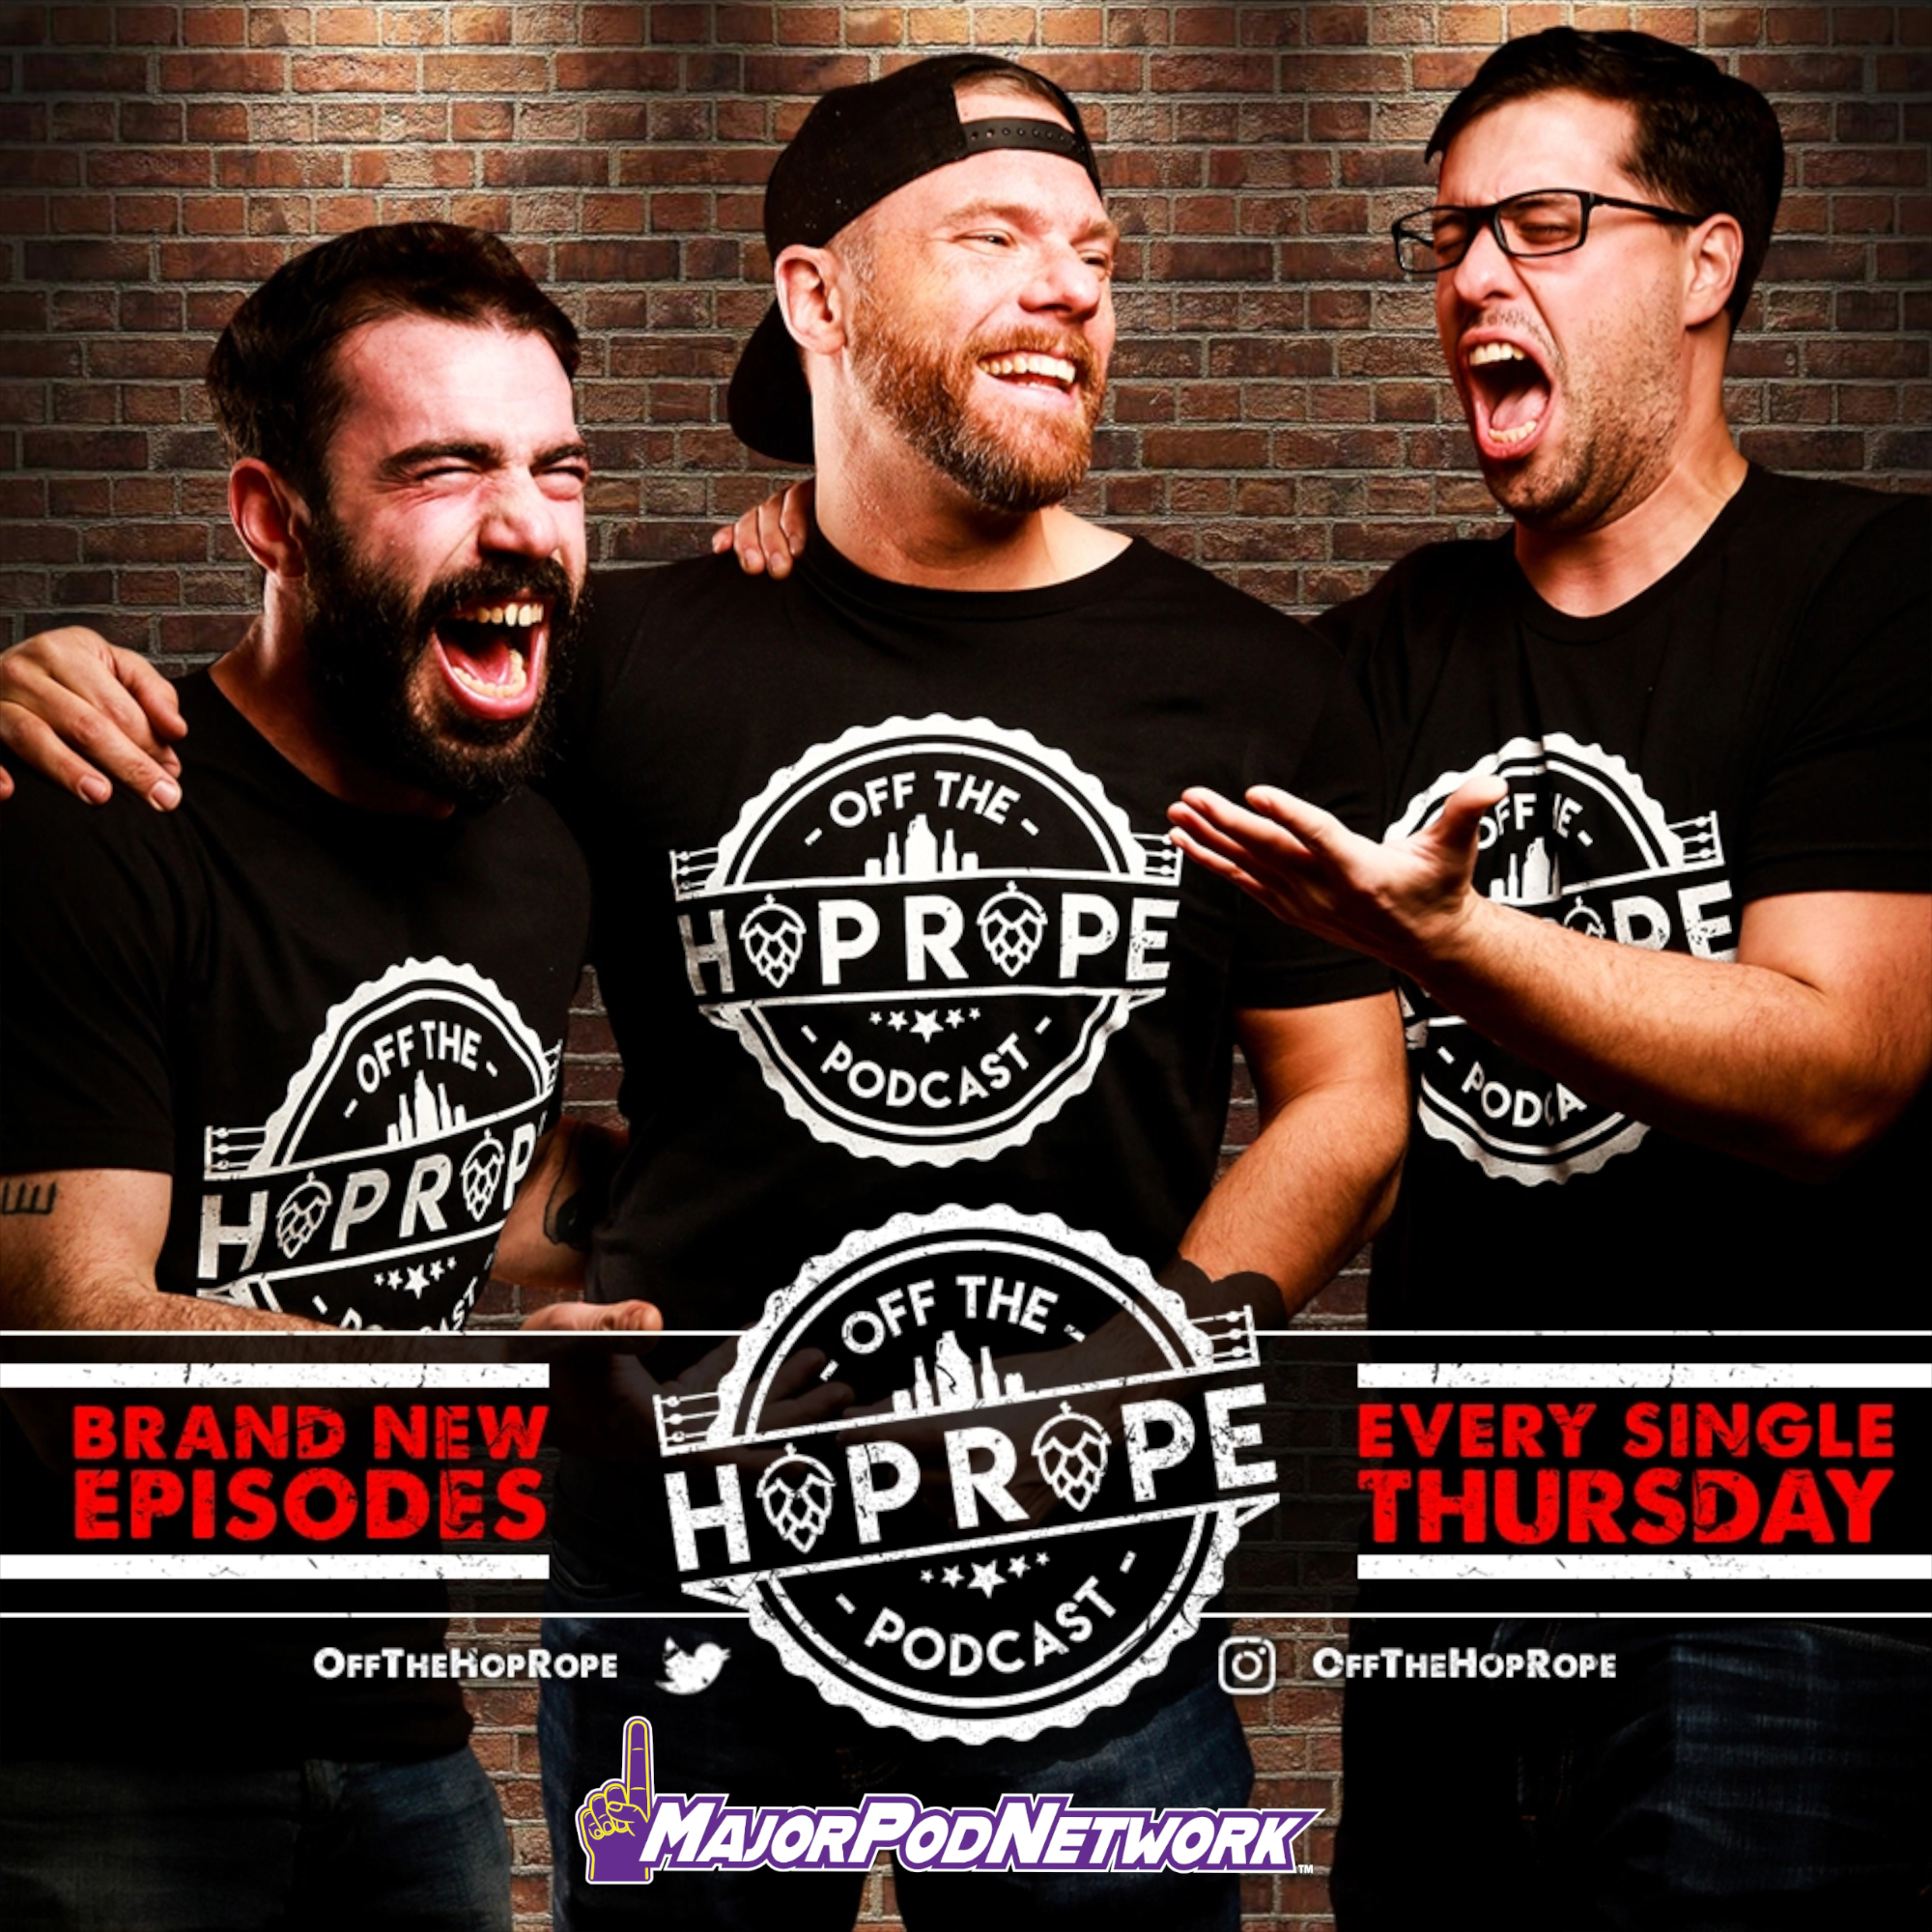 The Off The Hop Rope Podcast podcast